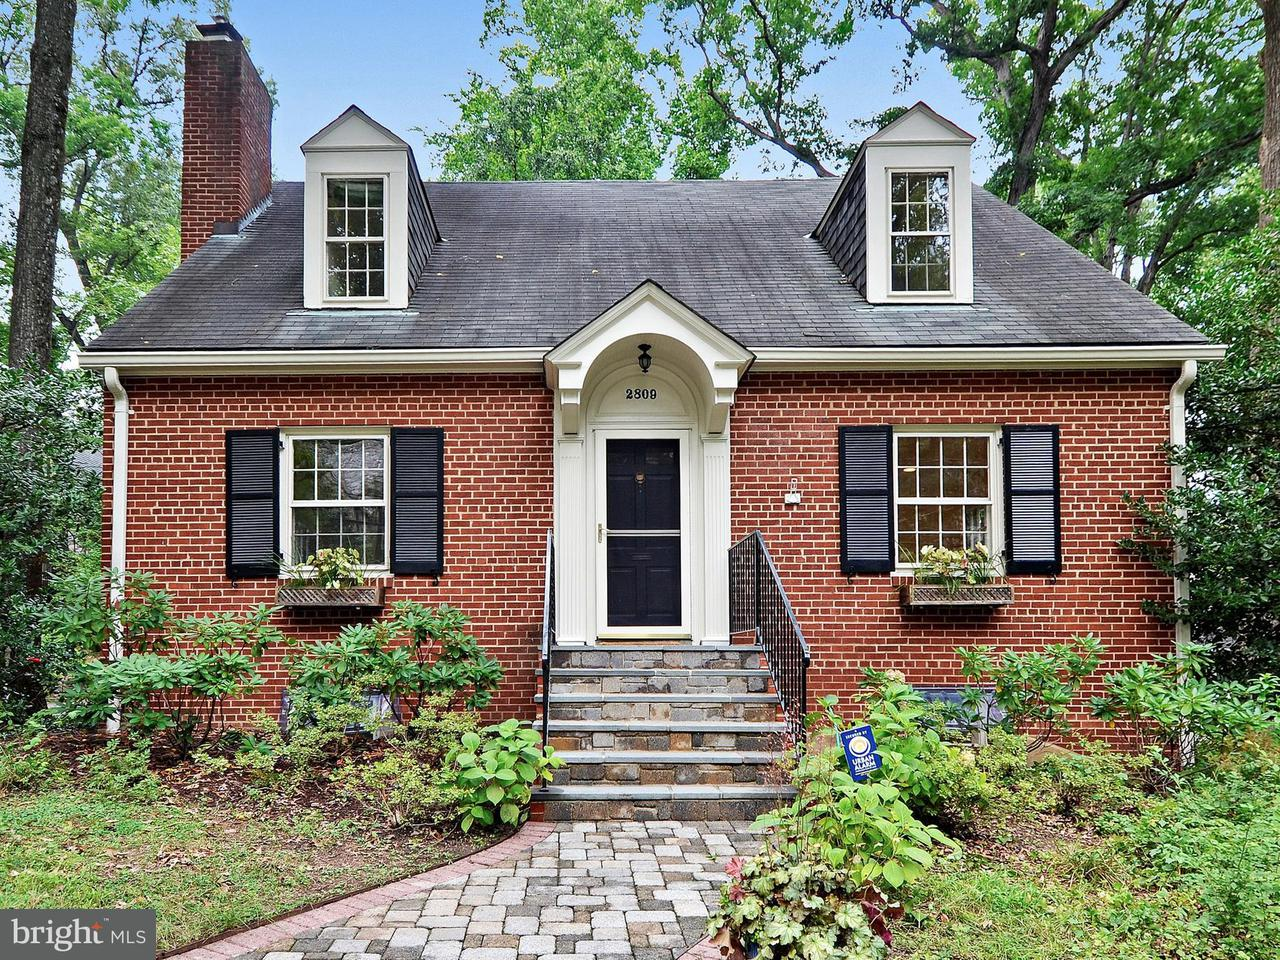 Single Family Home for Sale at 2809 BRANDYWINE ST NW 2809 BRANDYWINE ST NW Washington, District Of Columbia 20008 United States